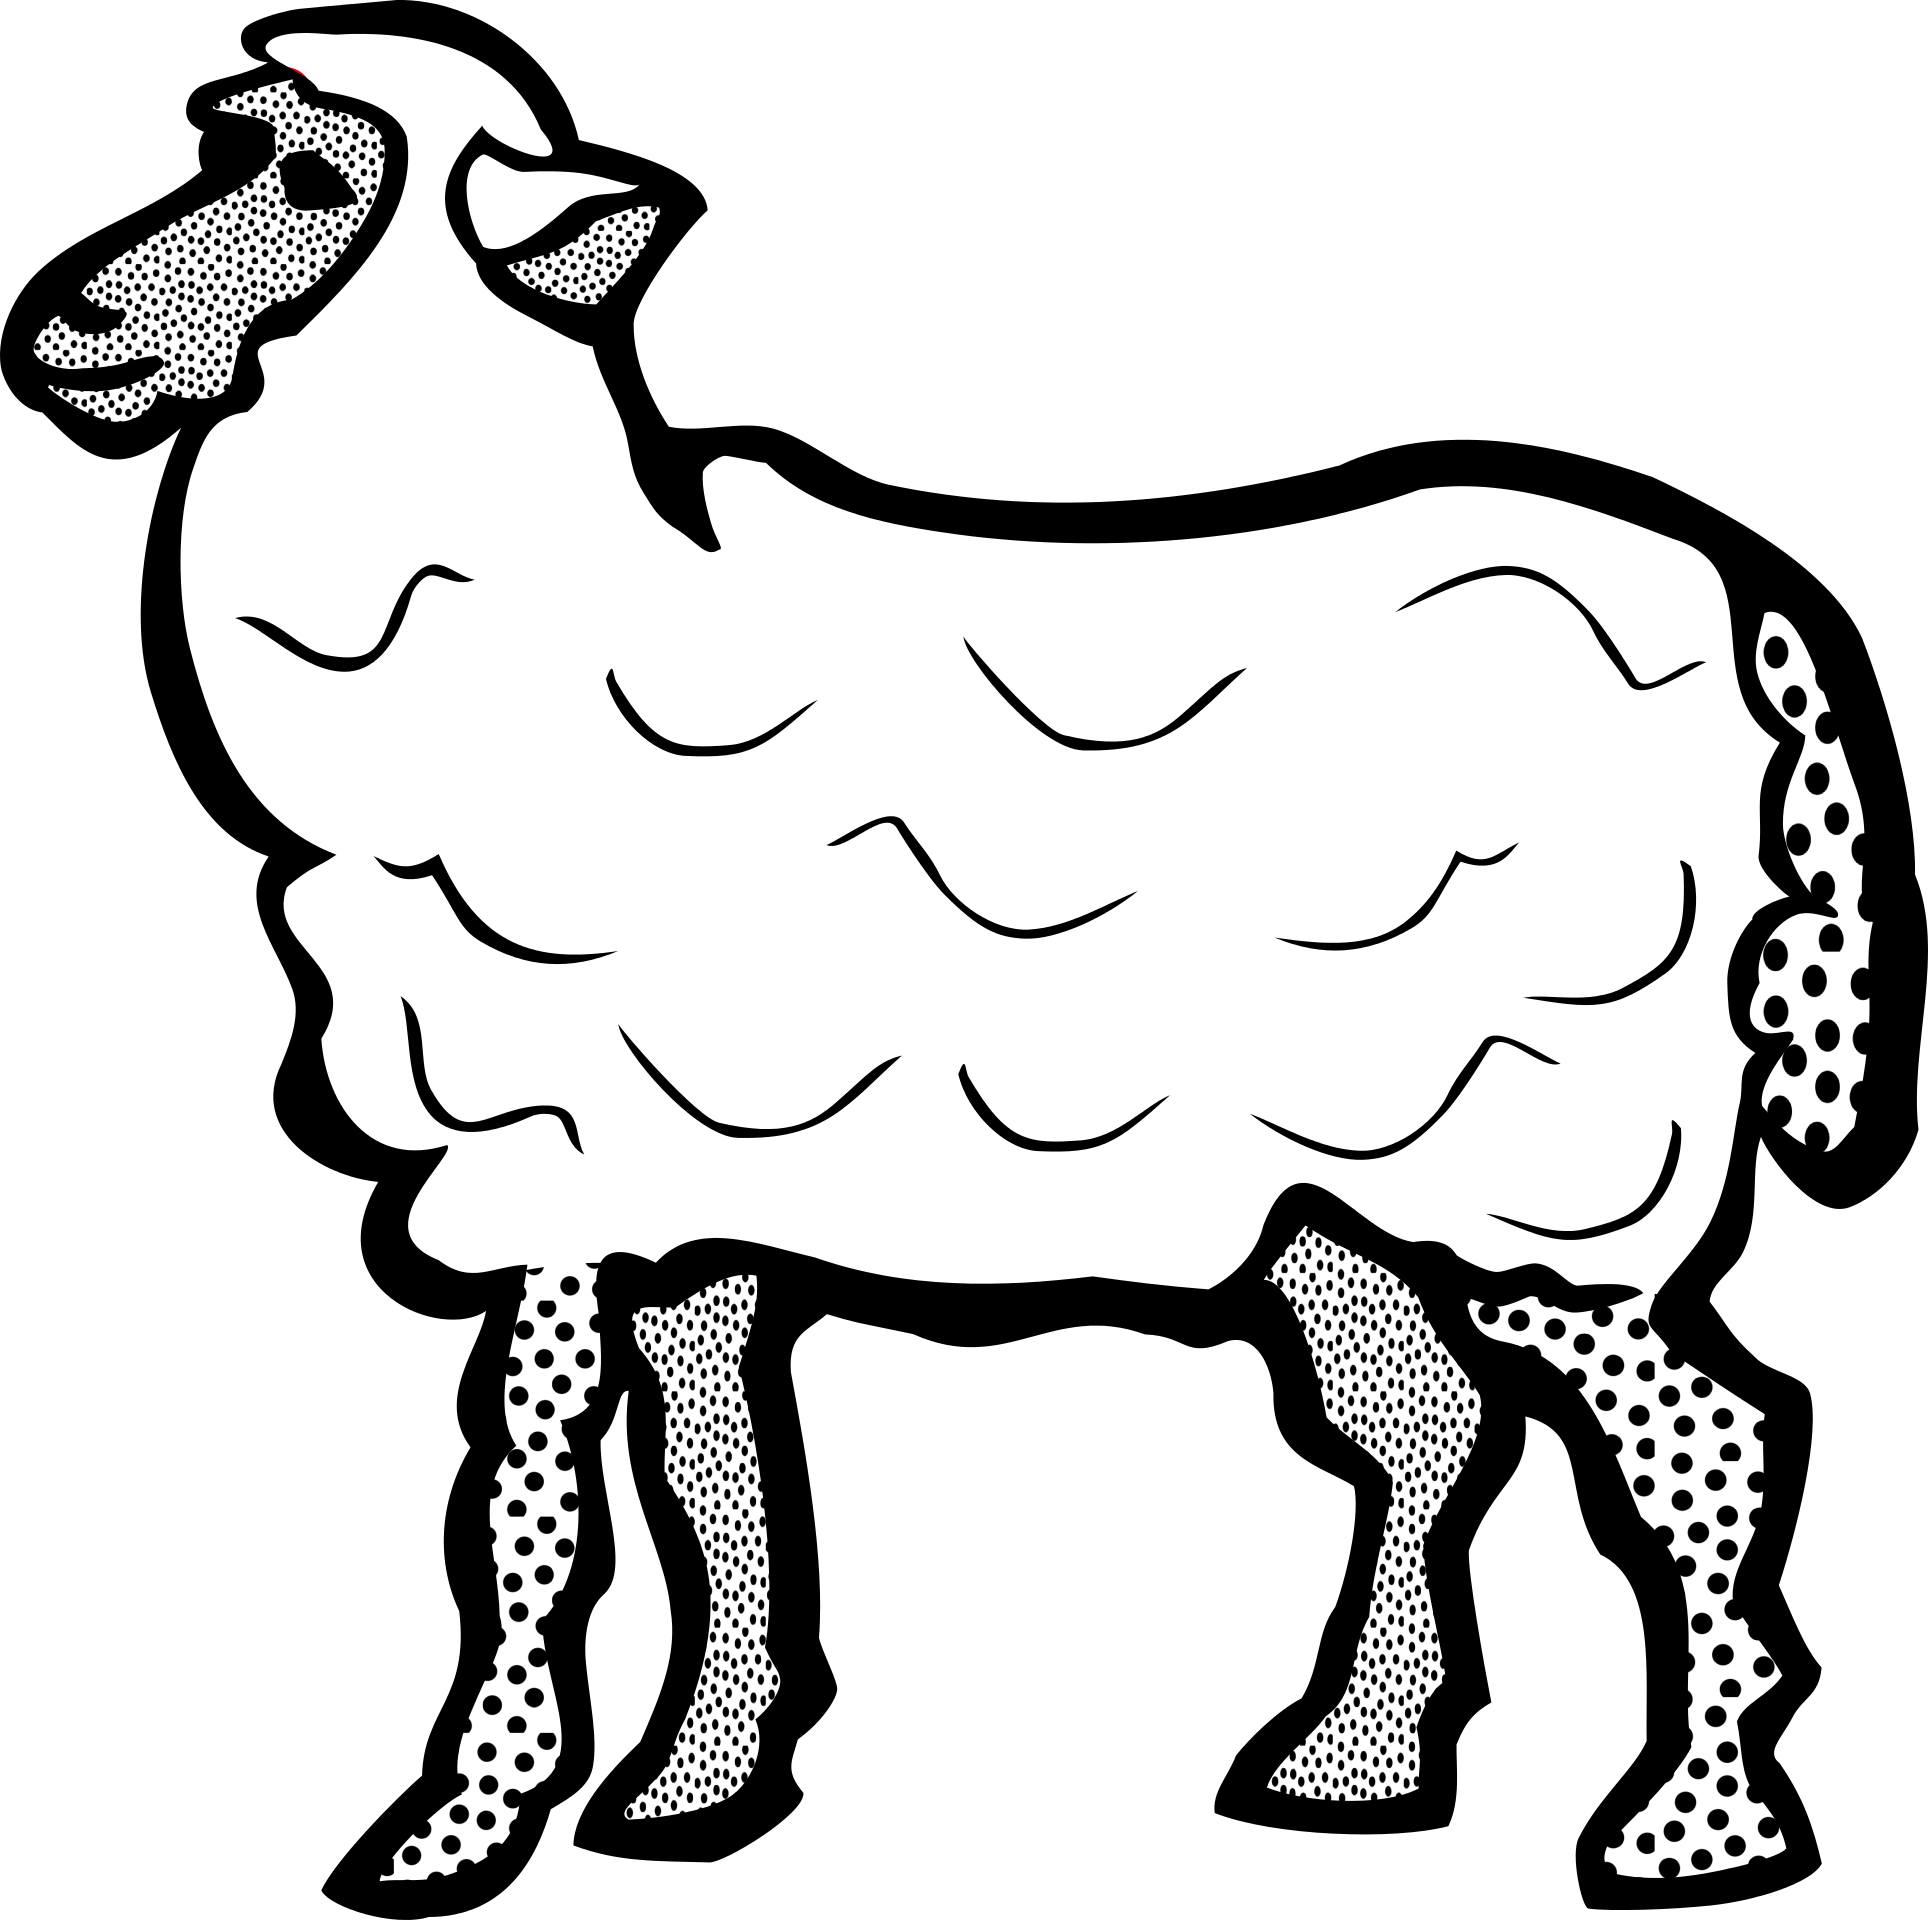 Black and white of. Drawing sheep farm animal vector